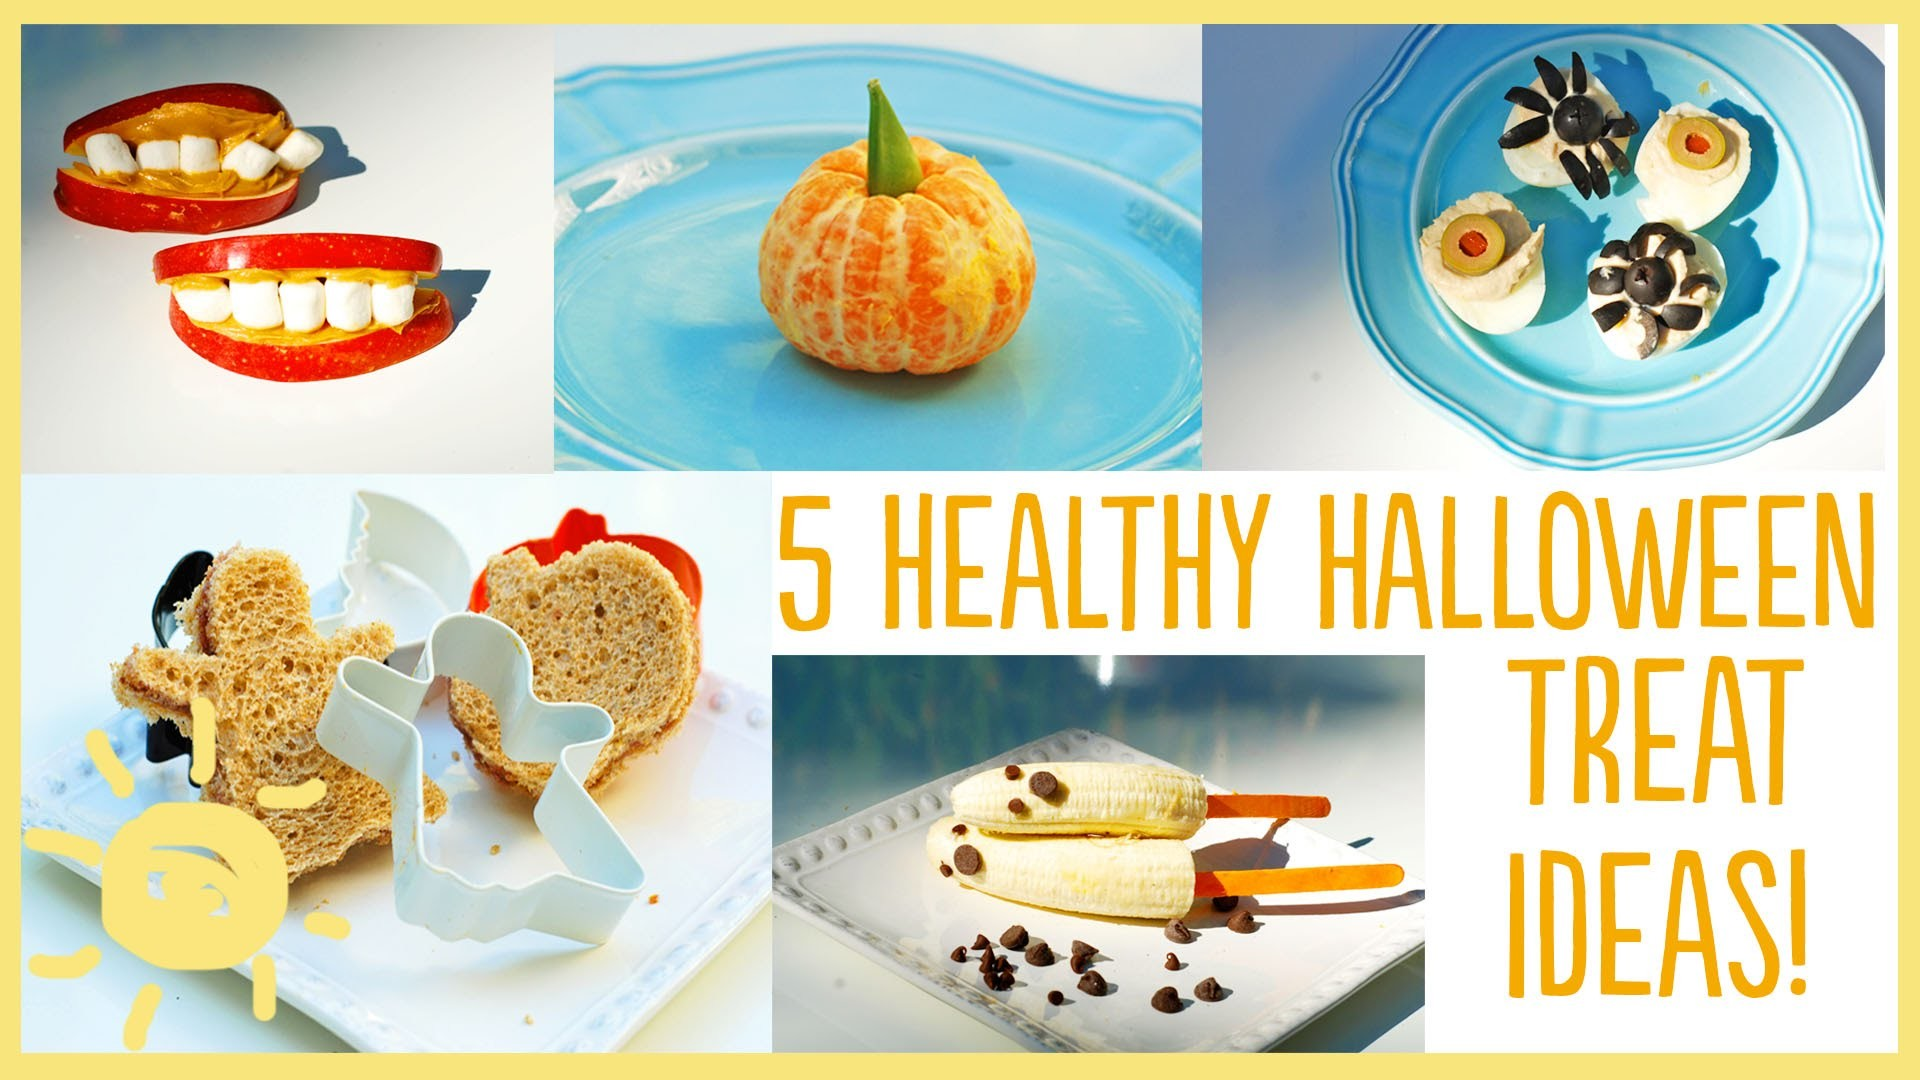 MEG | 5 Healthy Halloween Treats